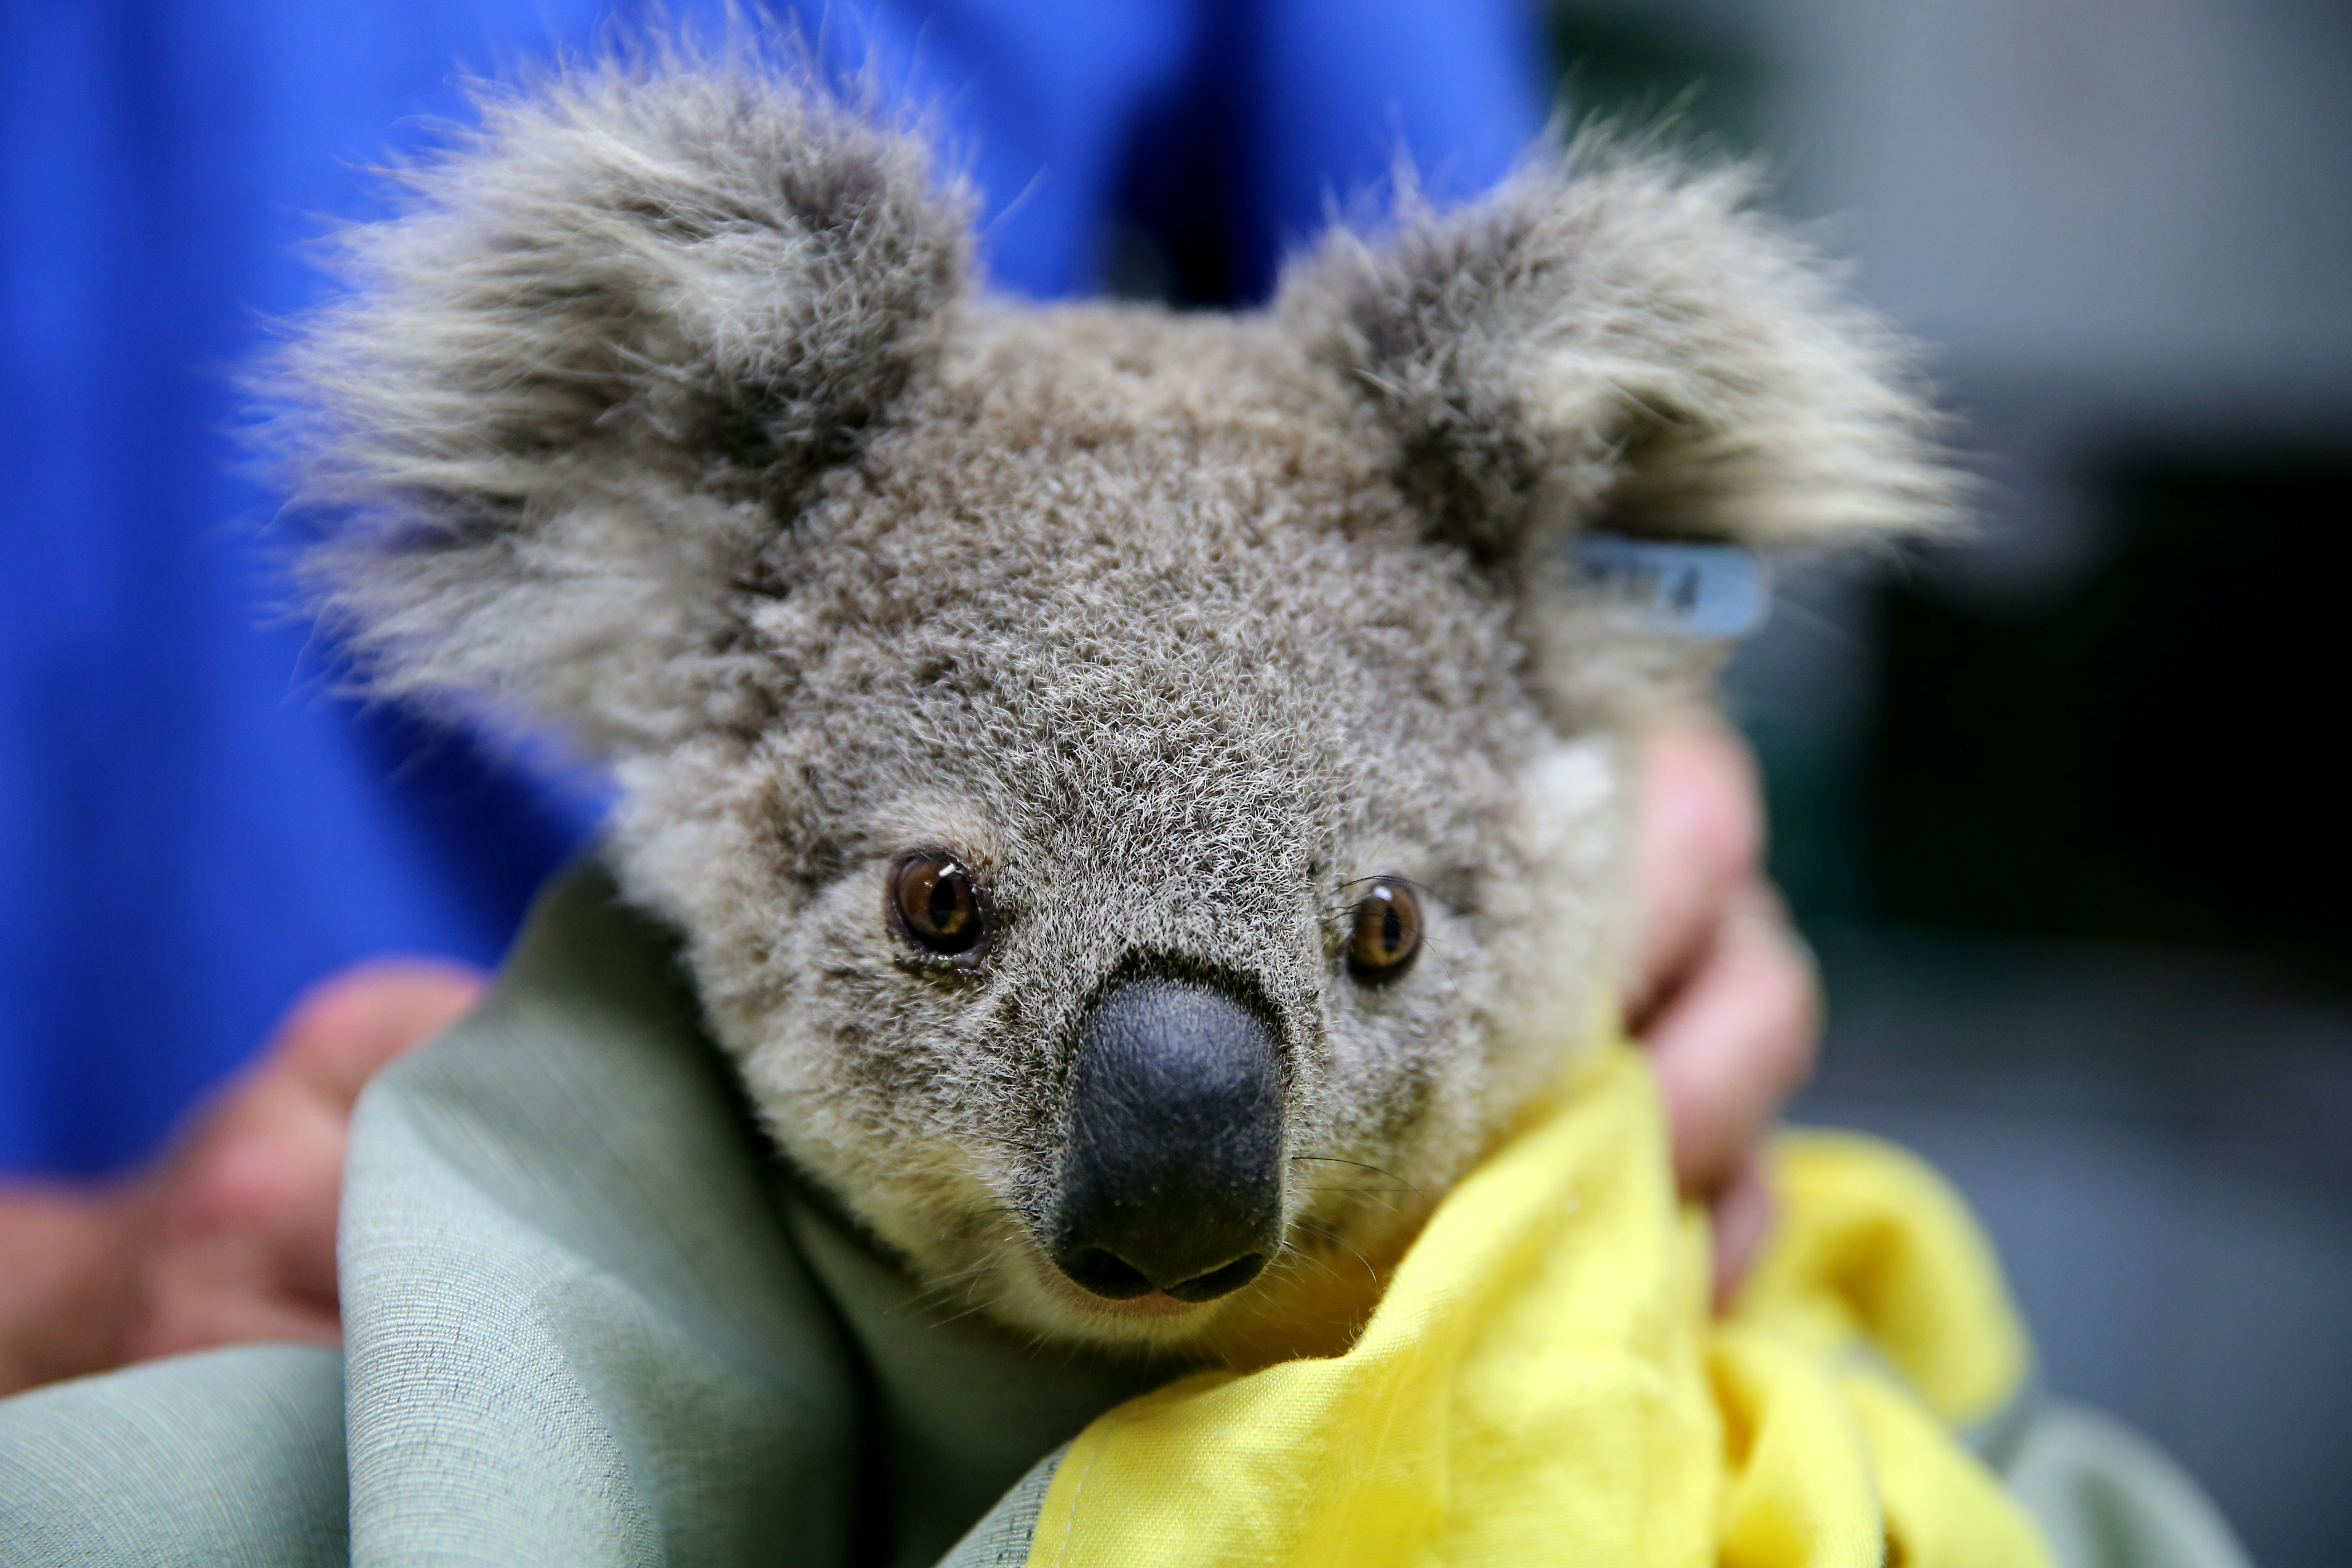 How To Help Save Australia S Koalas After Thousands Died In The Fires